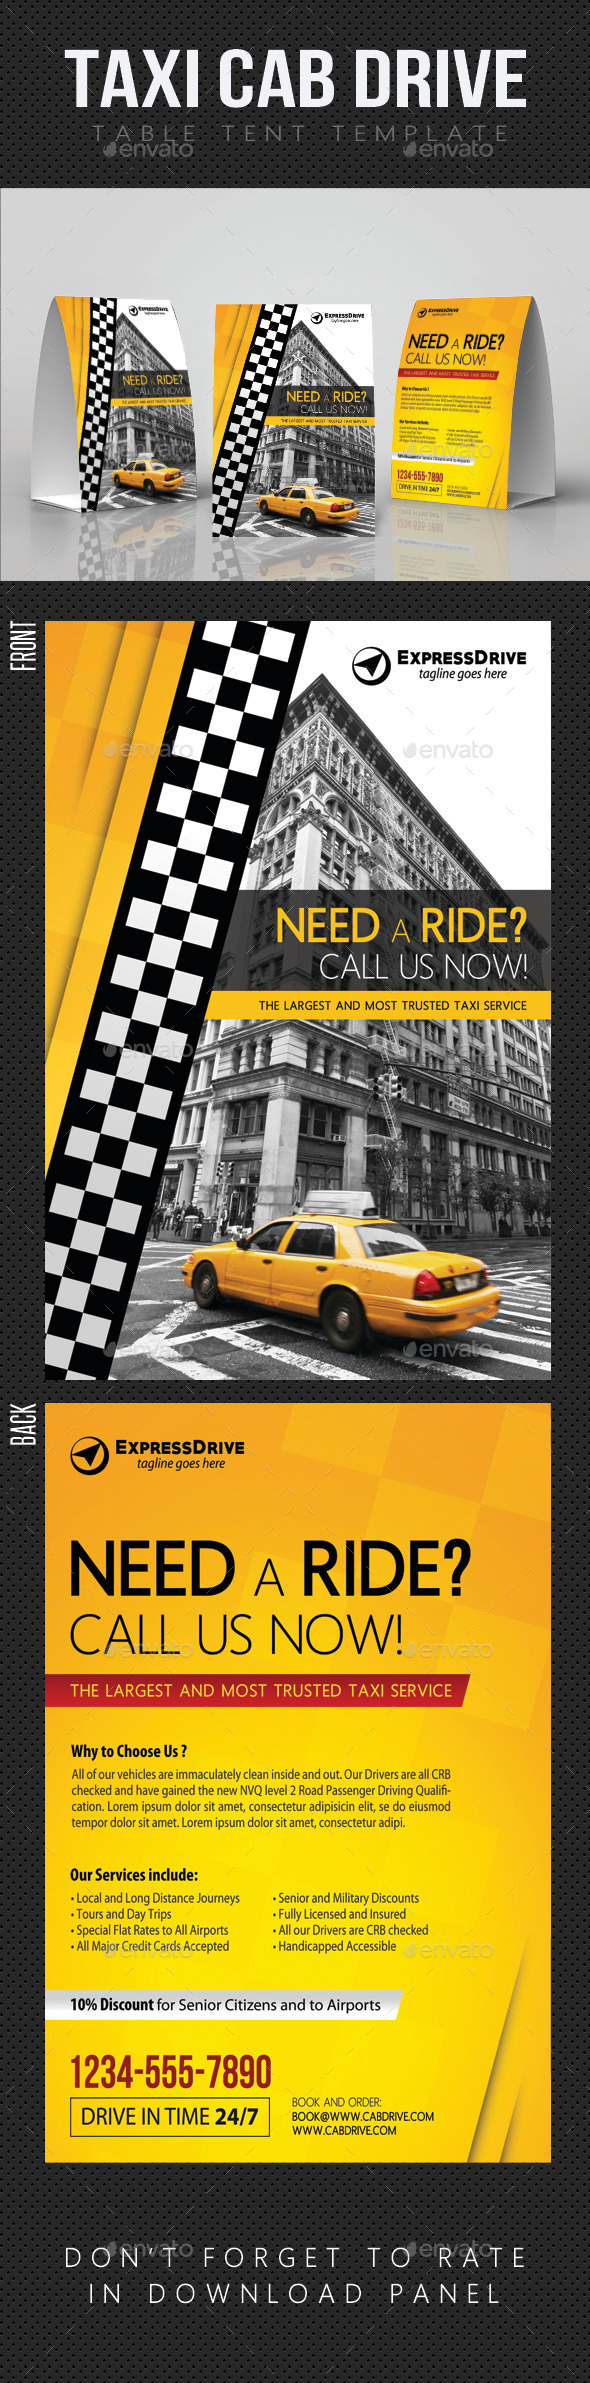 GraphicRiver Taxi Cab Drive Table Tent V02 11932367